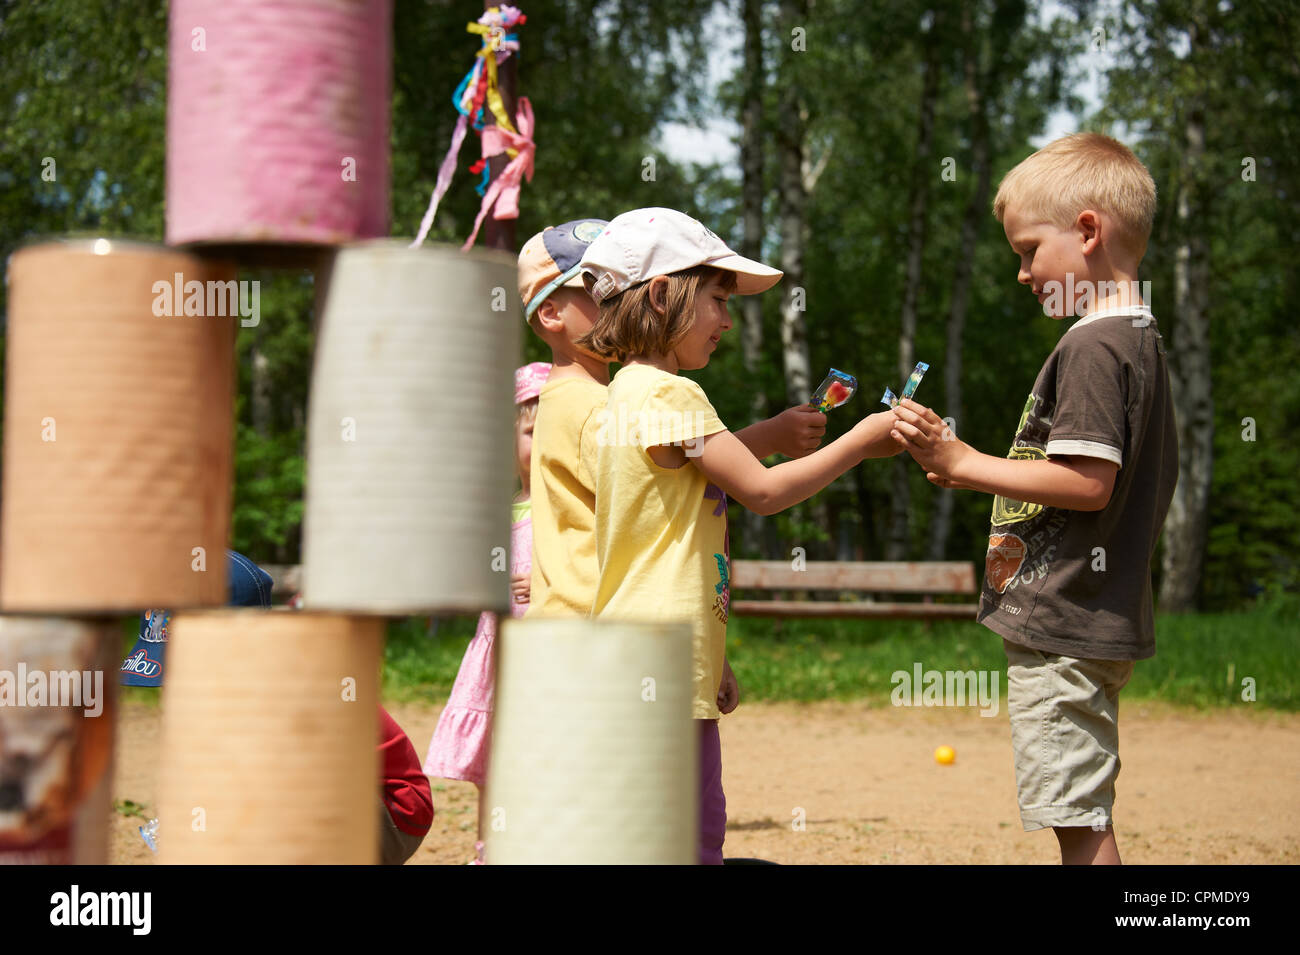 Children throw with small ball on pyramid of cans - Stock Image